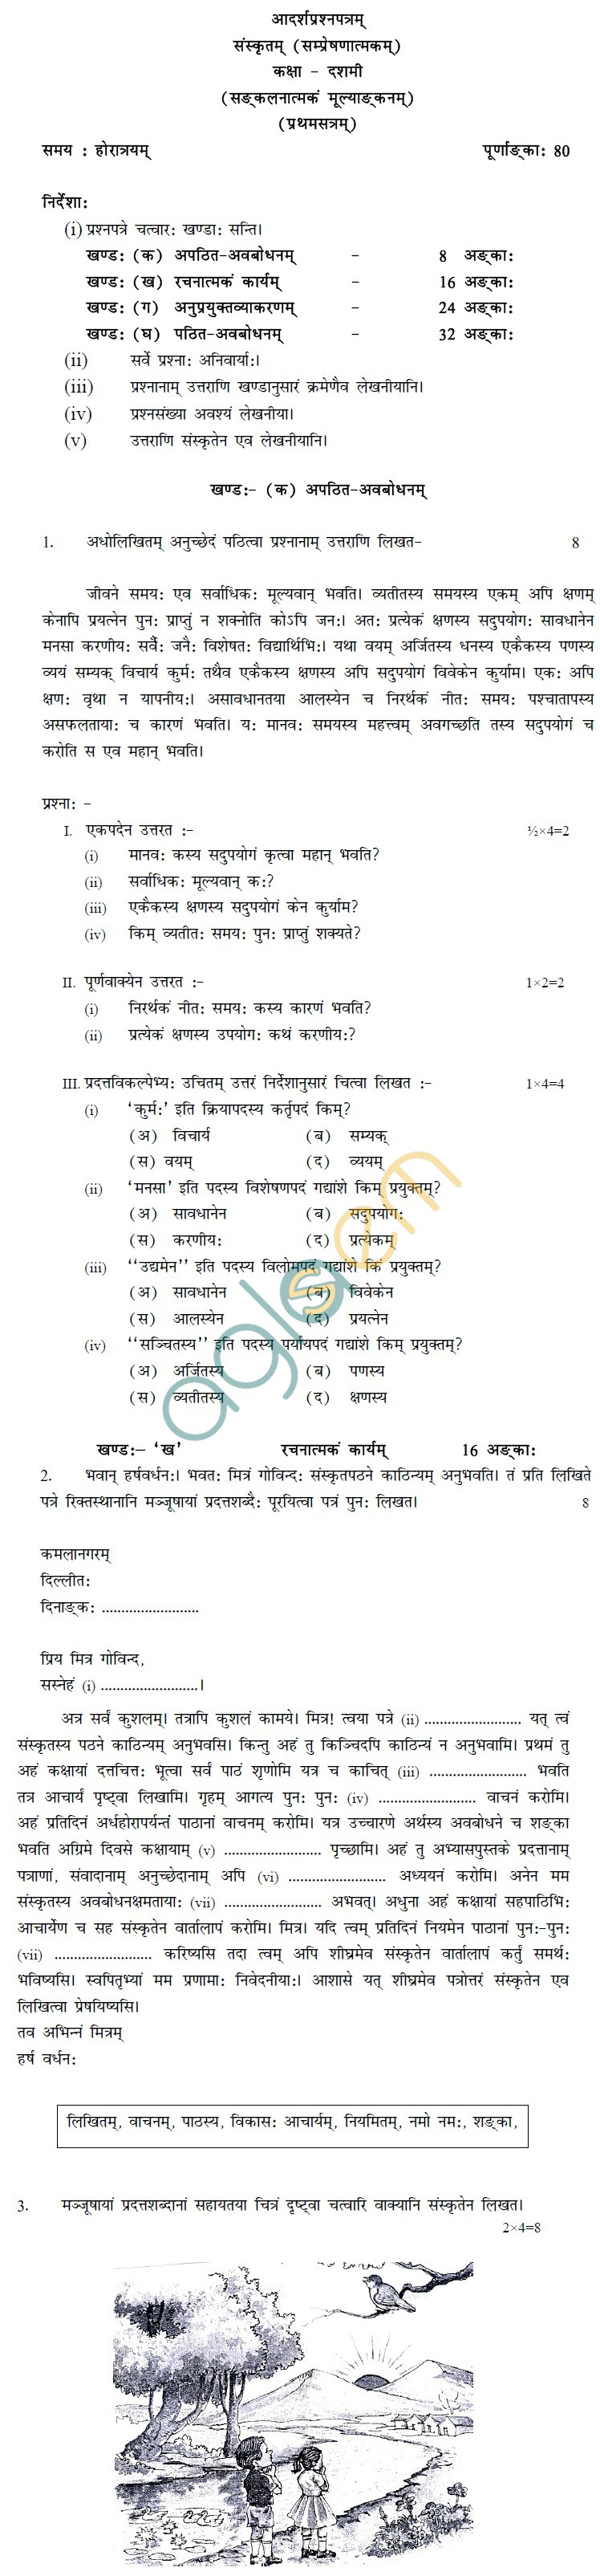 CBSE Board Exam 2013 Sample Papers (SA1) Class X - Sanskrit